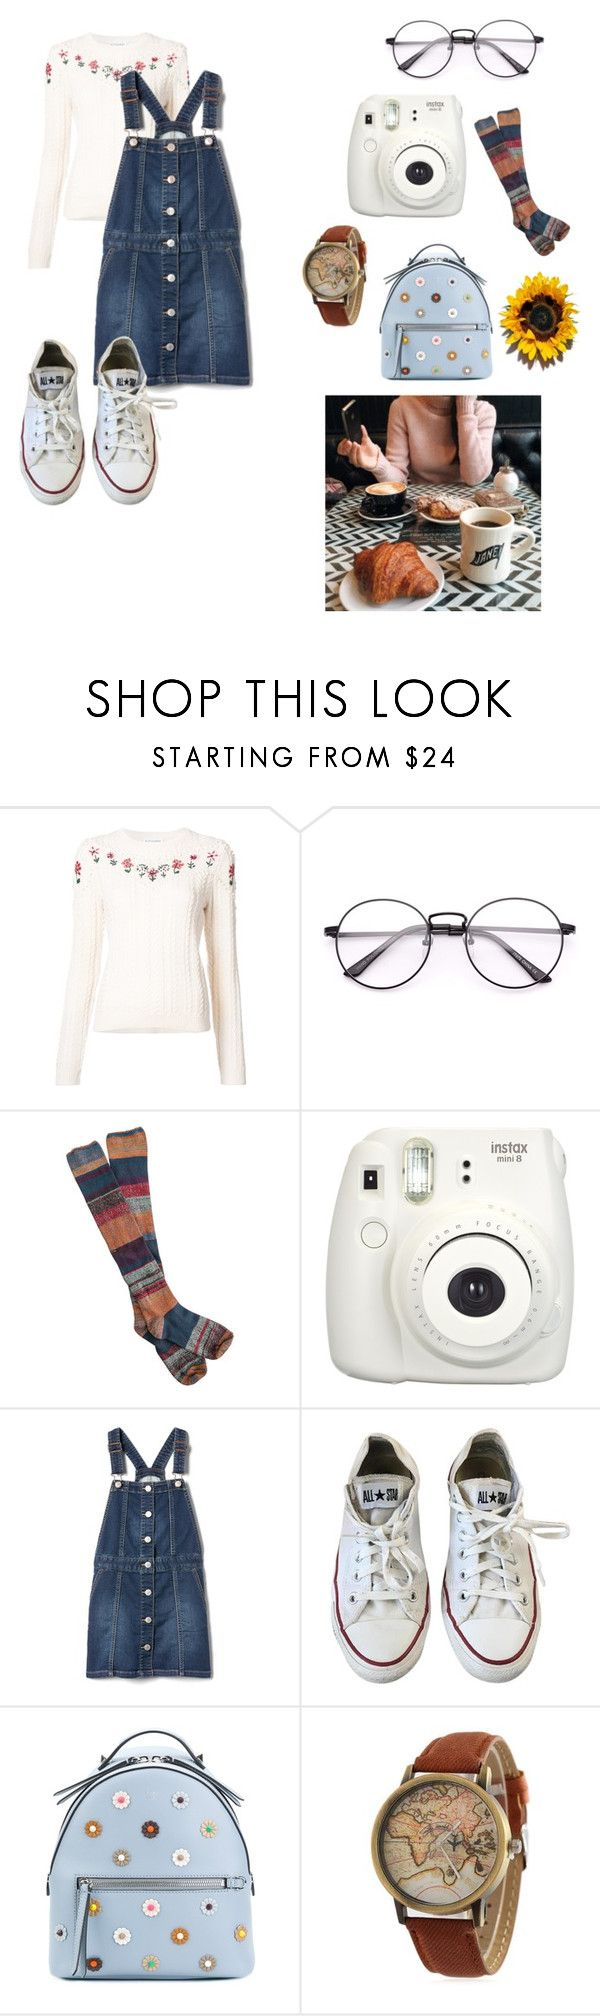 """""""This Charming Man"""" by padfoot31902 ❤ liked on Polyvore featuring Altuzarra, Free People, Fujifilm, Converse, Fendi and CoffeeDate"""